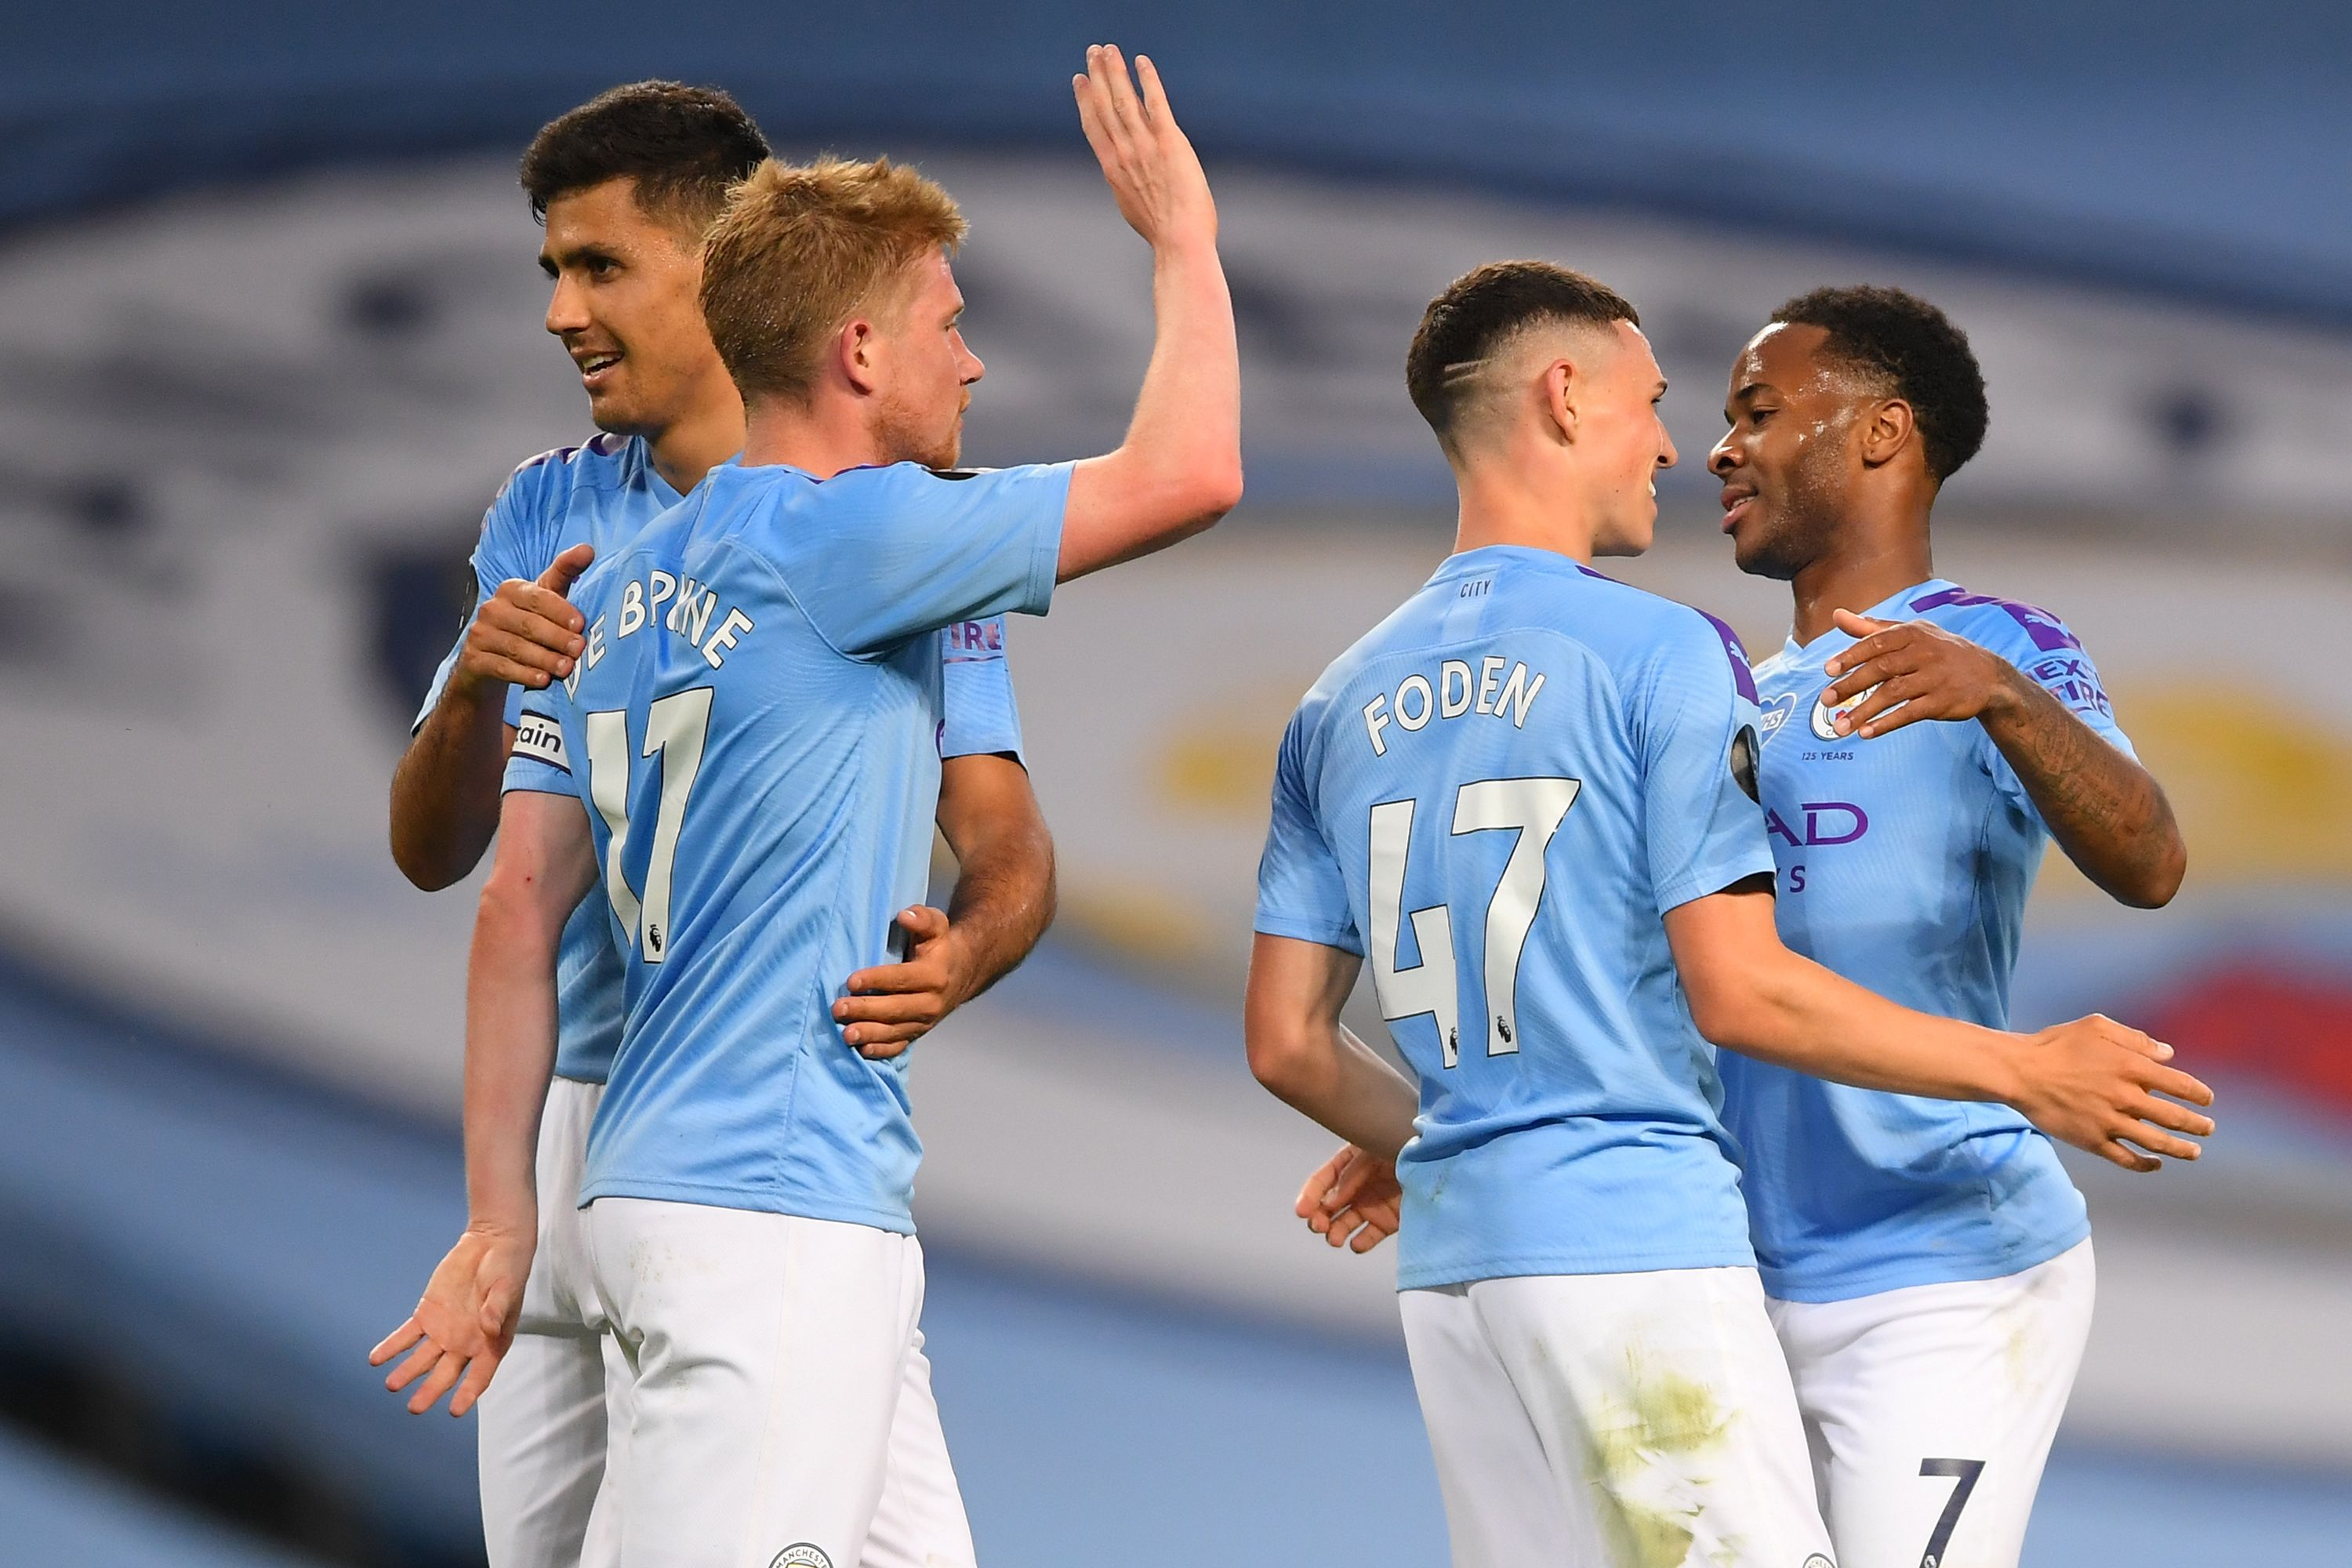 Manchester City player ratings vs Liverpool (Man City players celebrating in the picture)